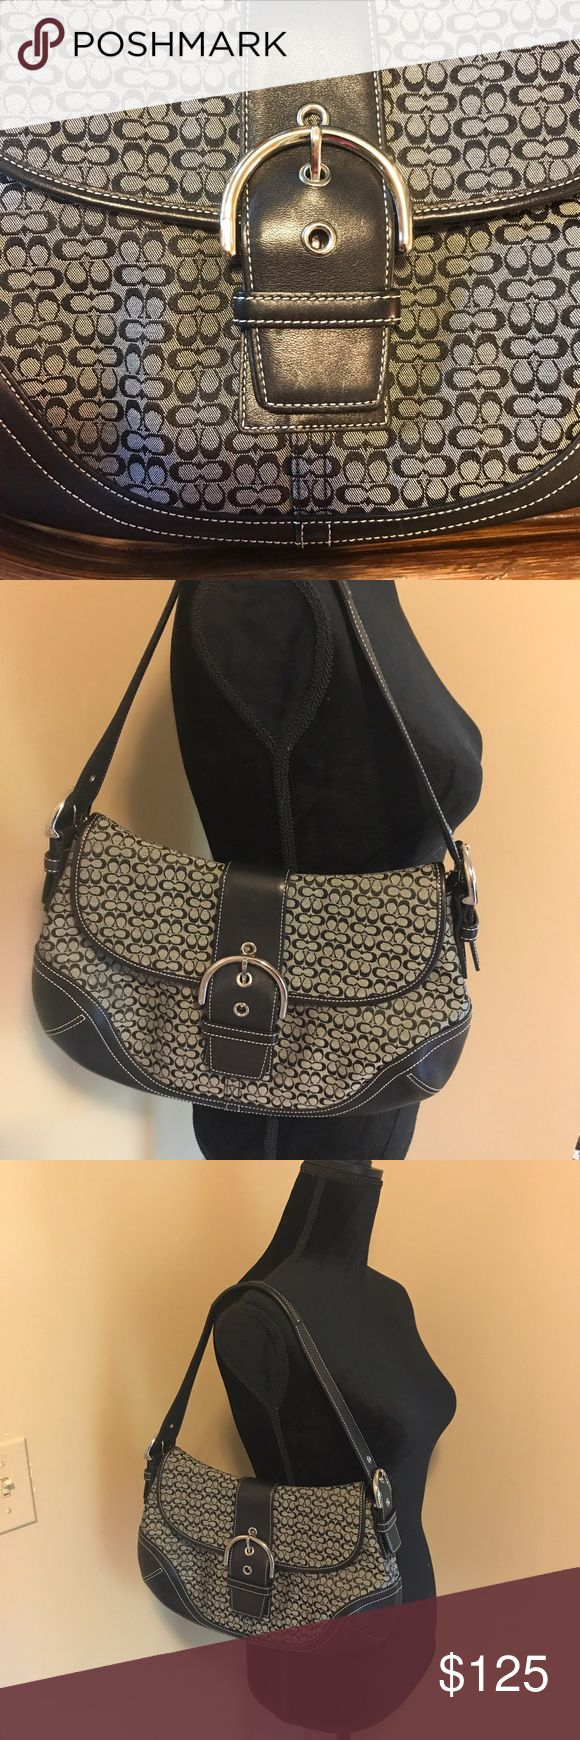 NWT Authentic Signature Coach Hobo Bag Purse Authentic Signature Coach Buckle Flap Hobo Small Bag Purse. Buckle Flap with magnetic closure. Back compartment, a zipper compartment and two pockets on the inside. Purchased New in 2005 but Never Used!  Still has original tag tucked inside. All items come from a smoke free home. Coach Bags